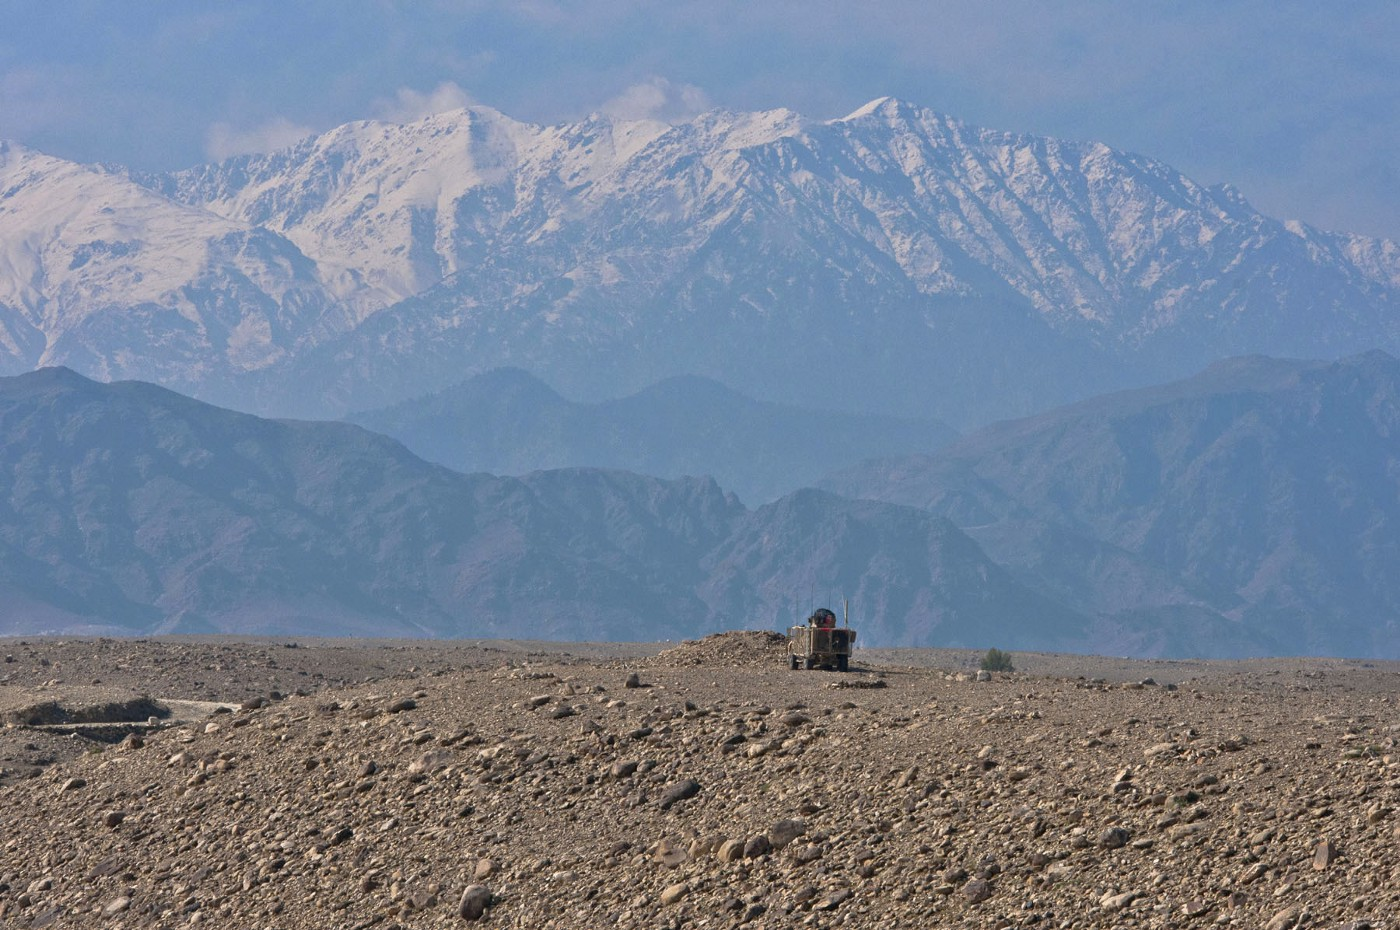 The mountains of Tora Bora loom over a lone U.S. mine resistant ambush protected vehicle as it patrols outside the Achin District Center, Nov. 5, 2011.